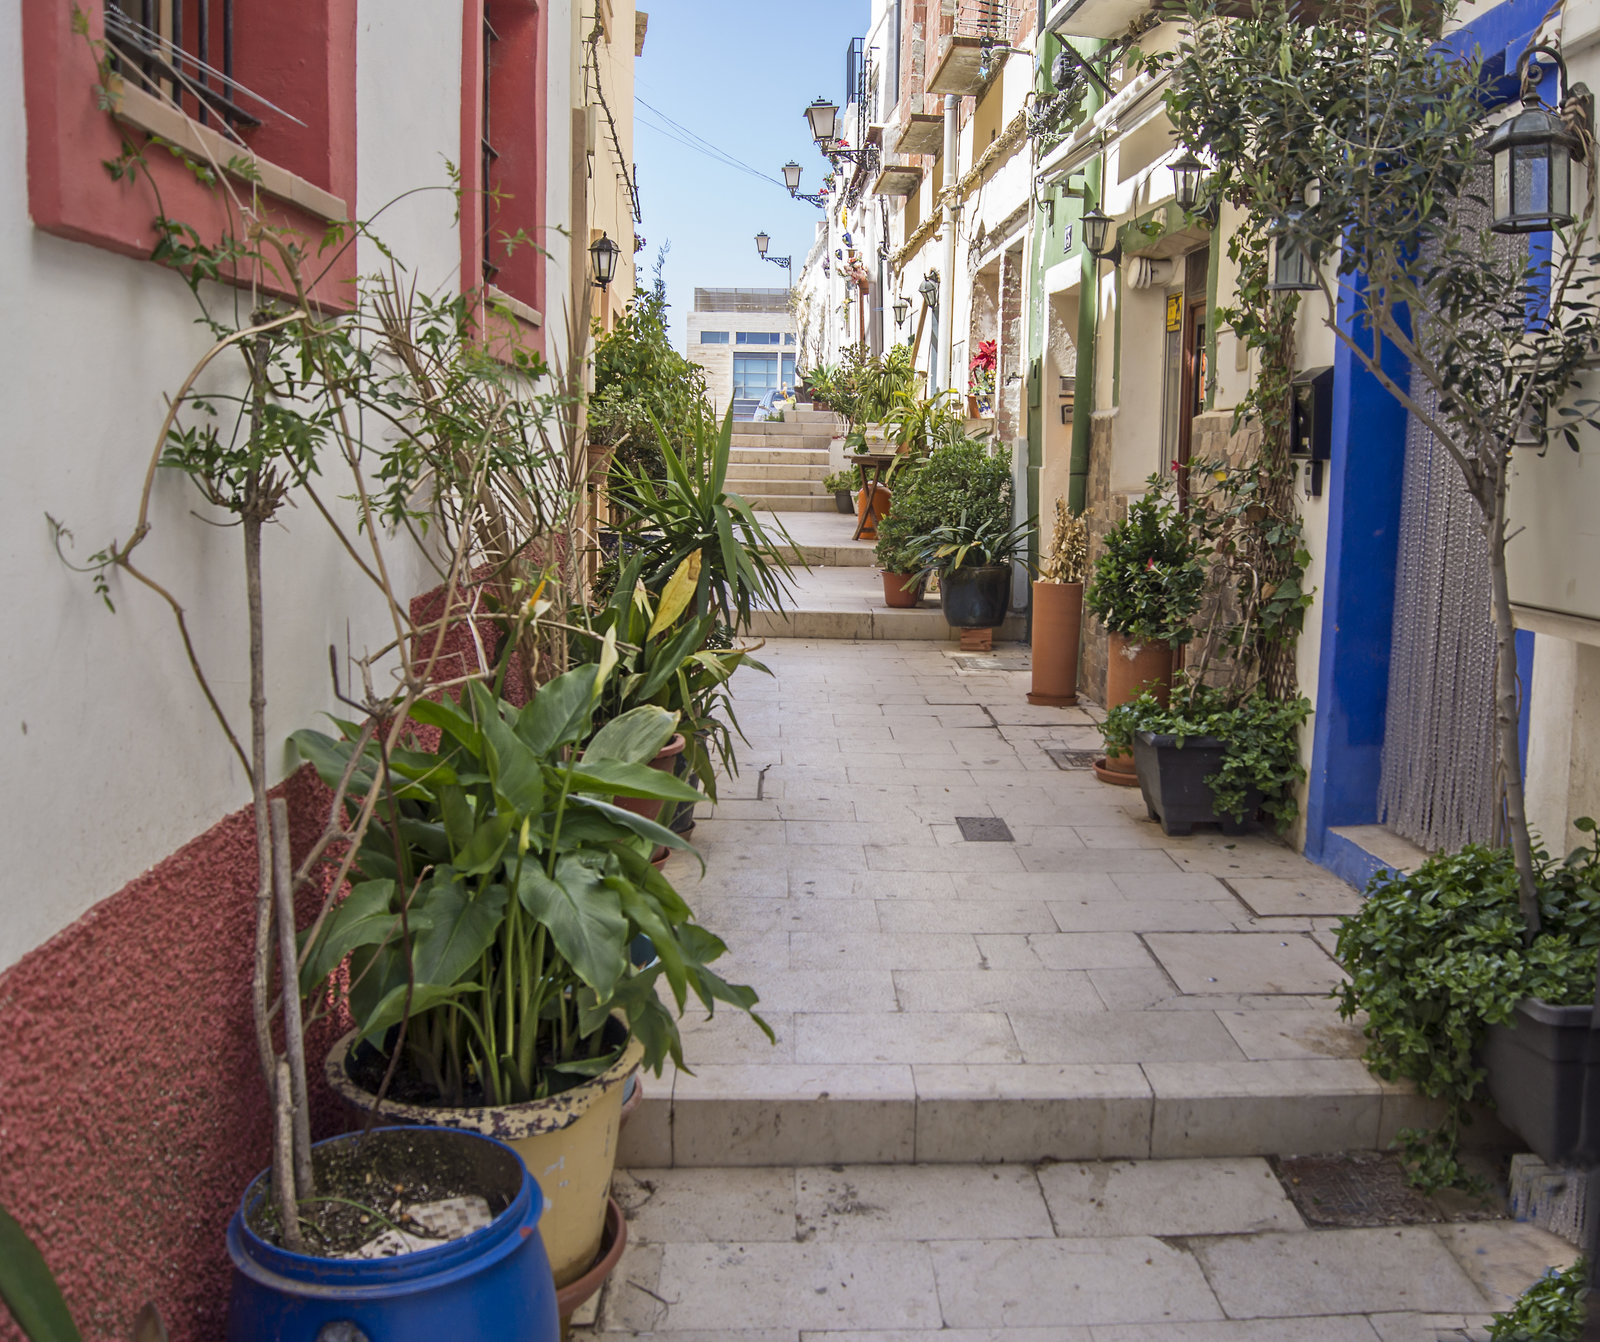 Barrio Santa Cruz, Alicante, Spain